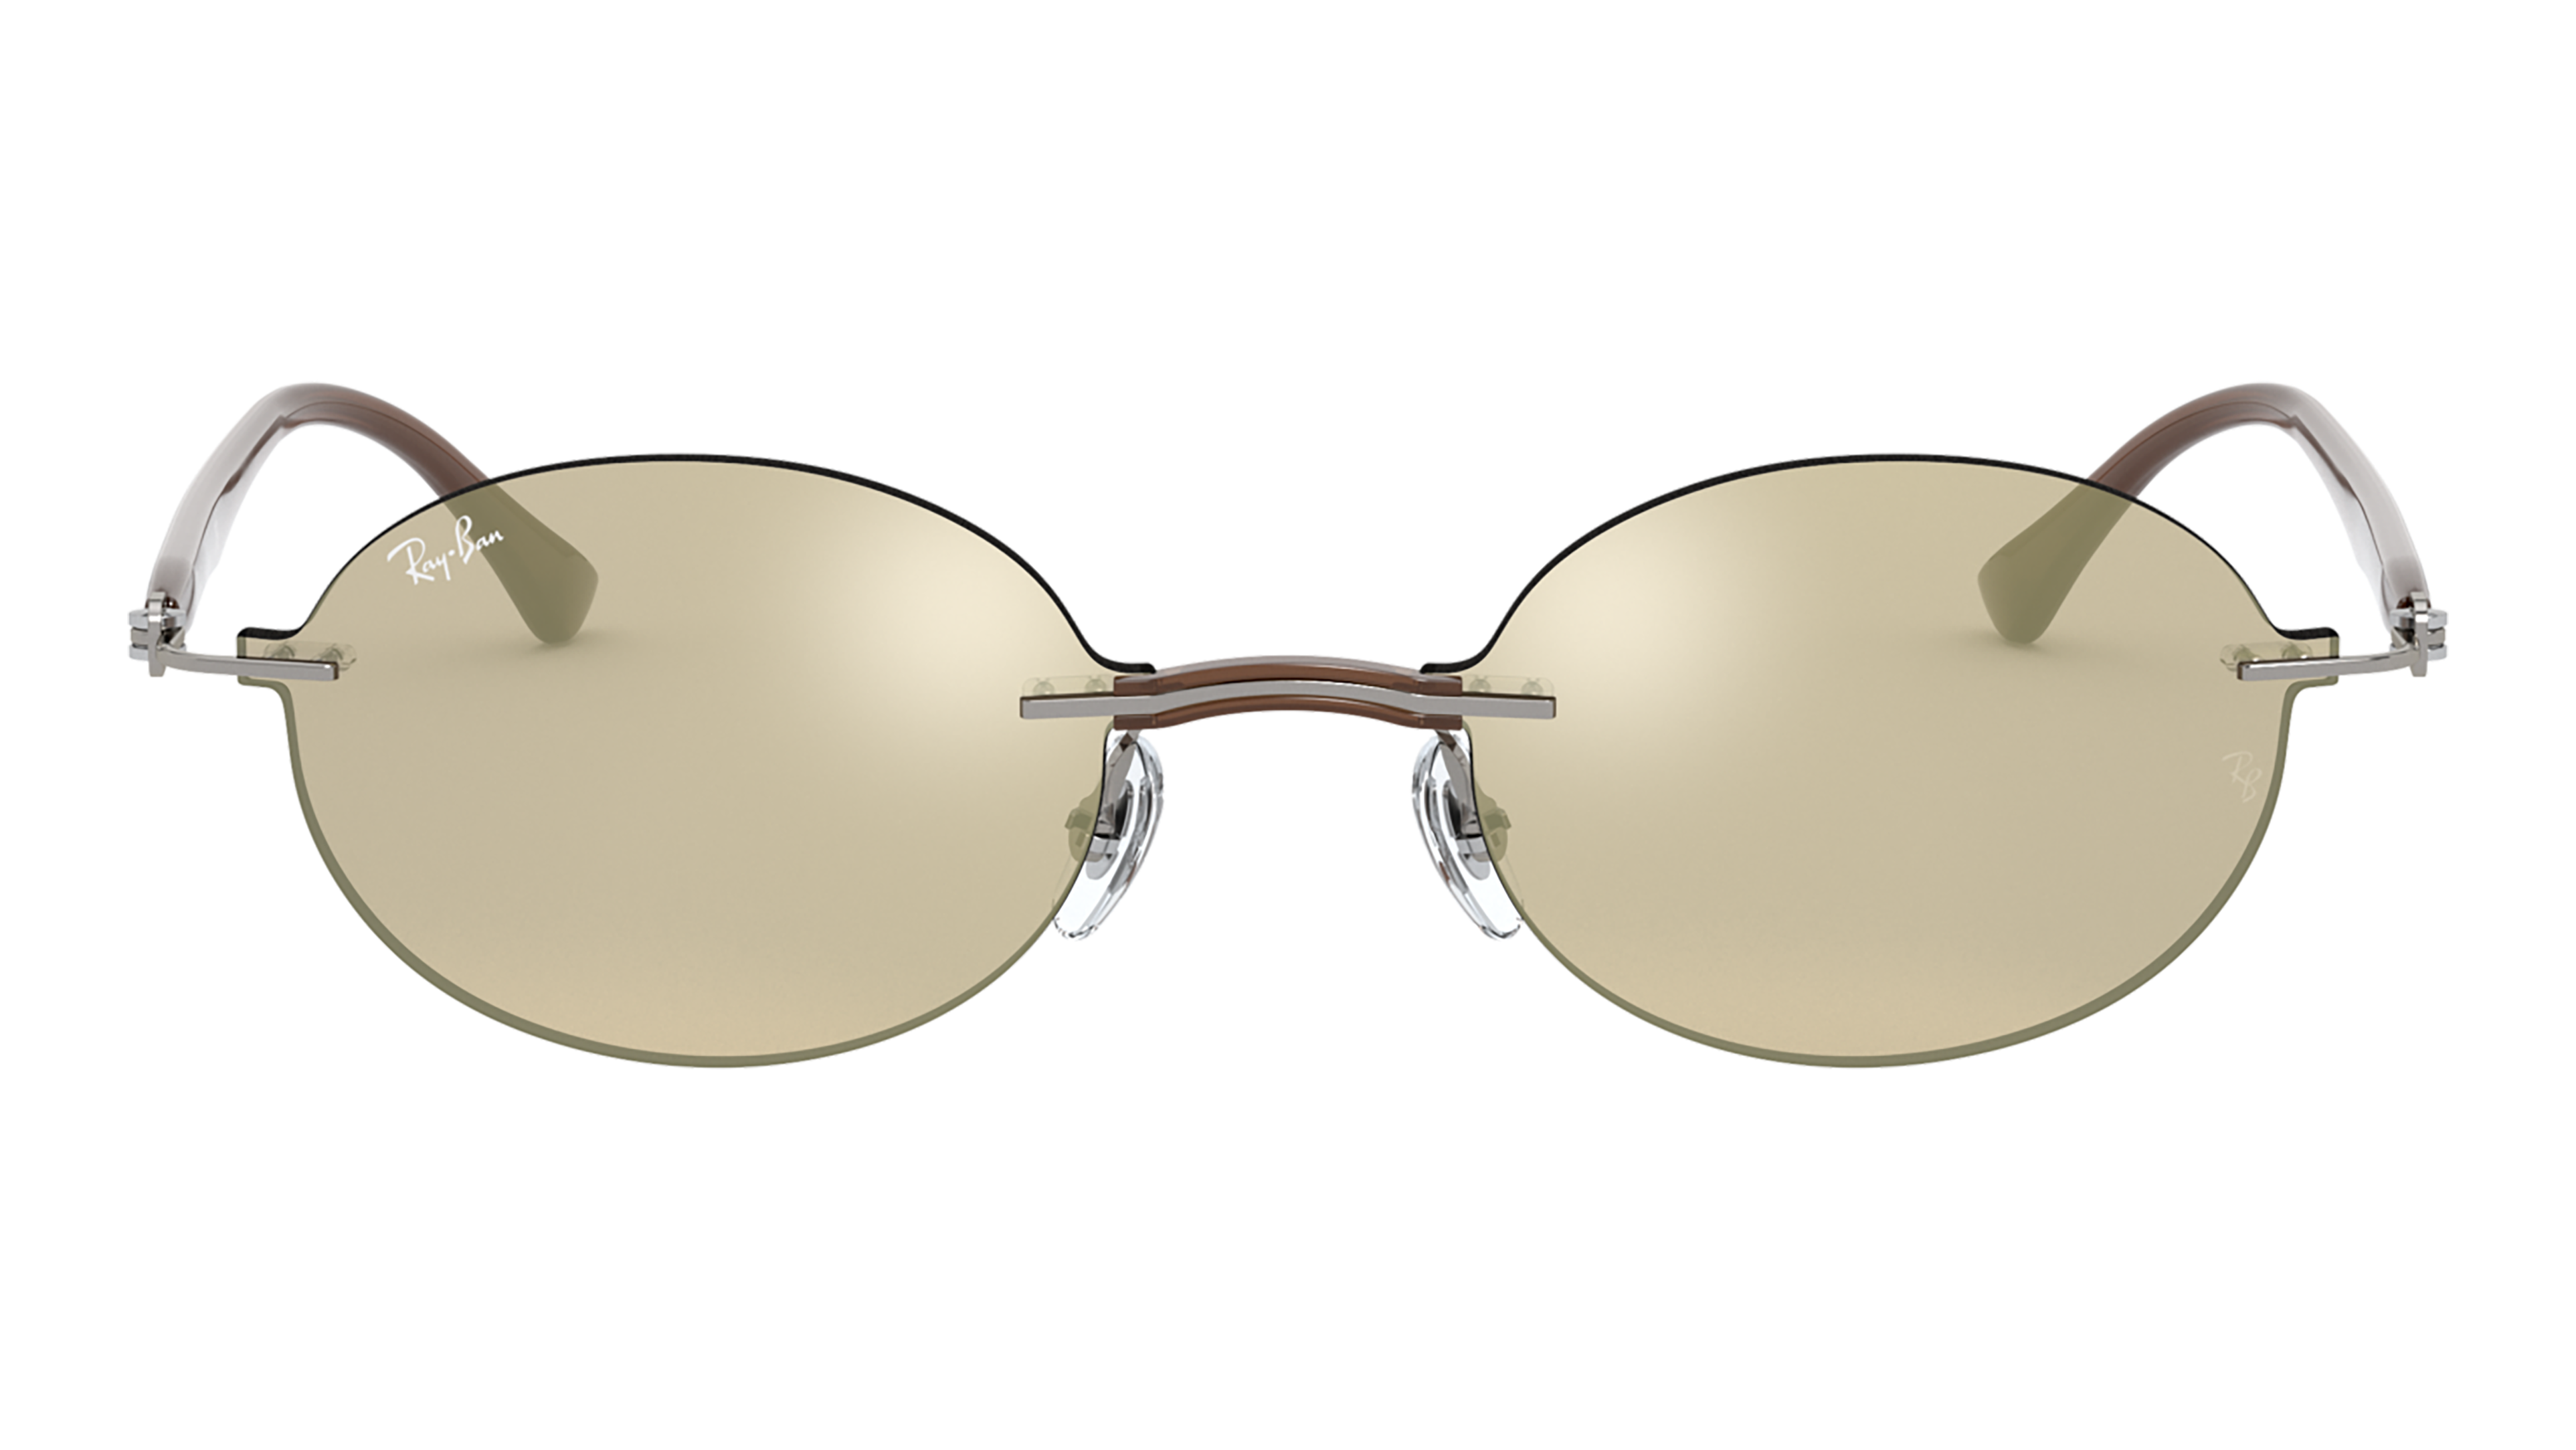 Front Ray-Ban Ray-Ban 0RB8060 159/5A 54/15 Transparant, Zilver/Grijs